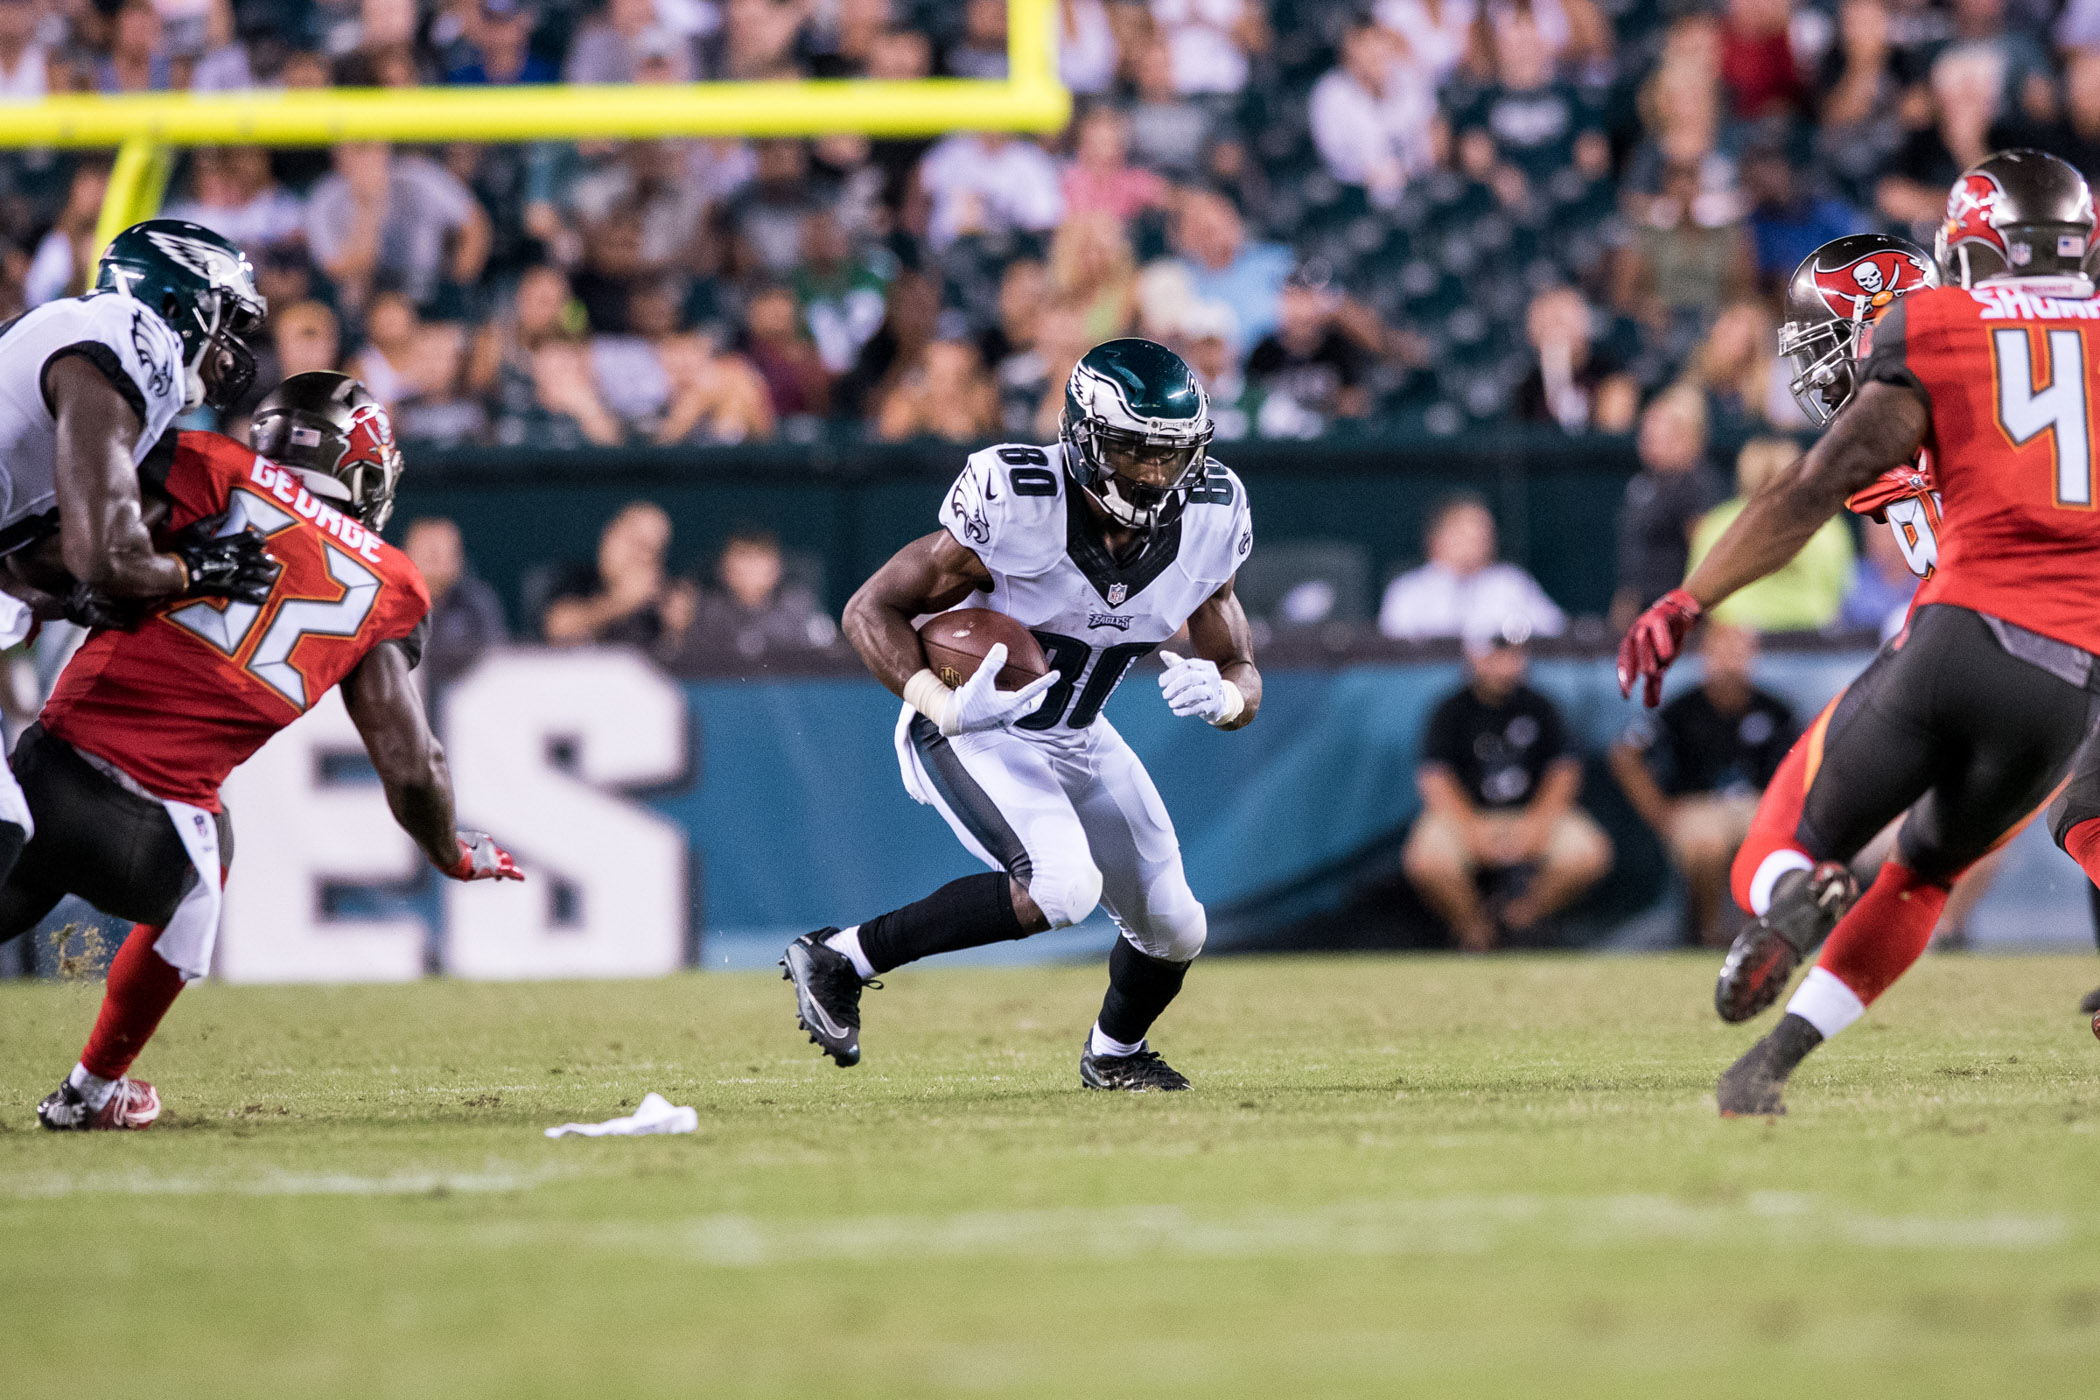 Philadelphia Eagles wide receiver Paul Turner sees an opening in the fourth-quarter against the Tampa Bay Buccaneers in a preseason game on Thursday, Aug.11, 2016 at the Lincoln Financial Field in Philadelphia. (Michael Ares / Philadelphia Inquirer)